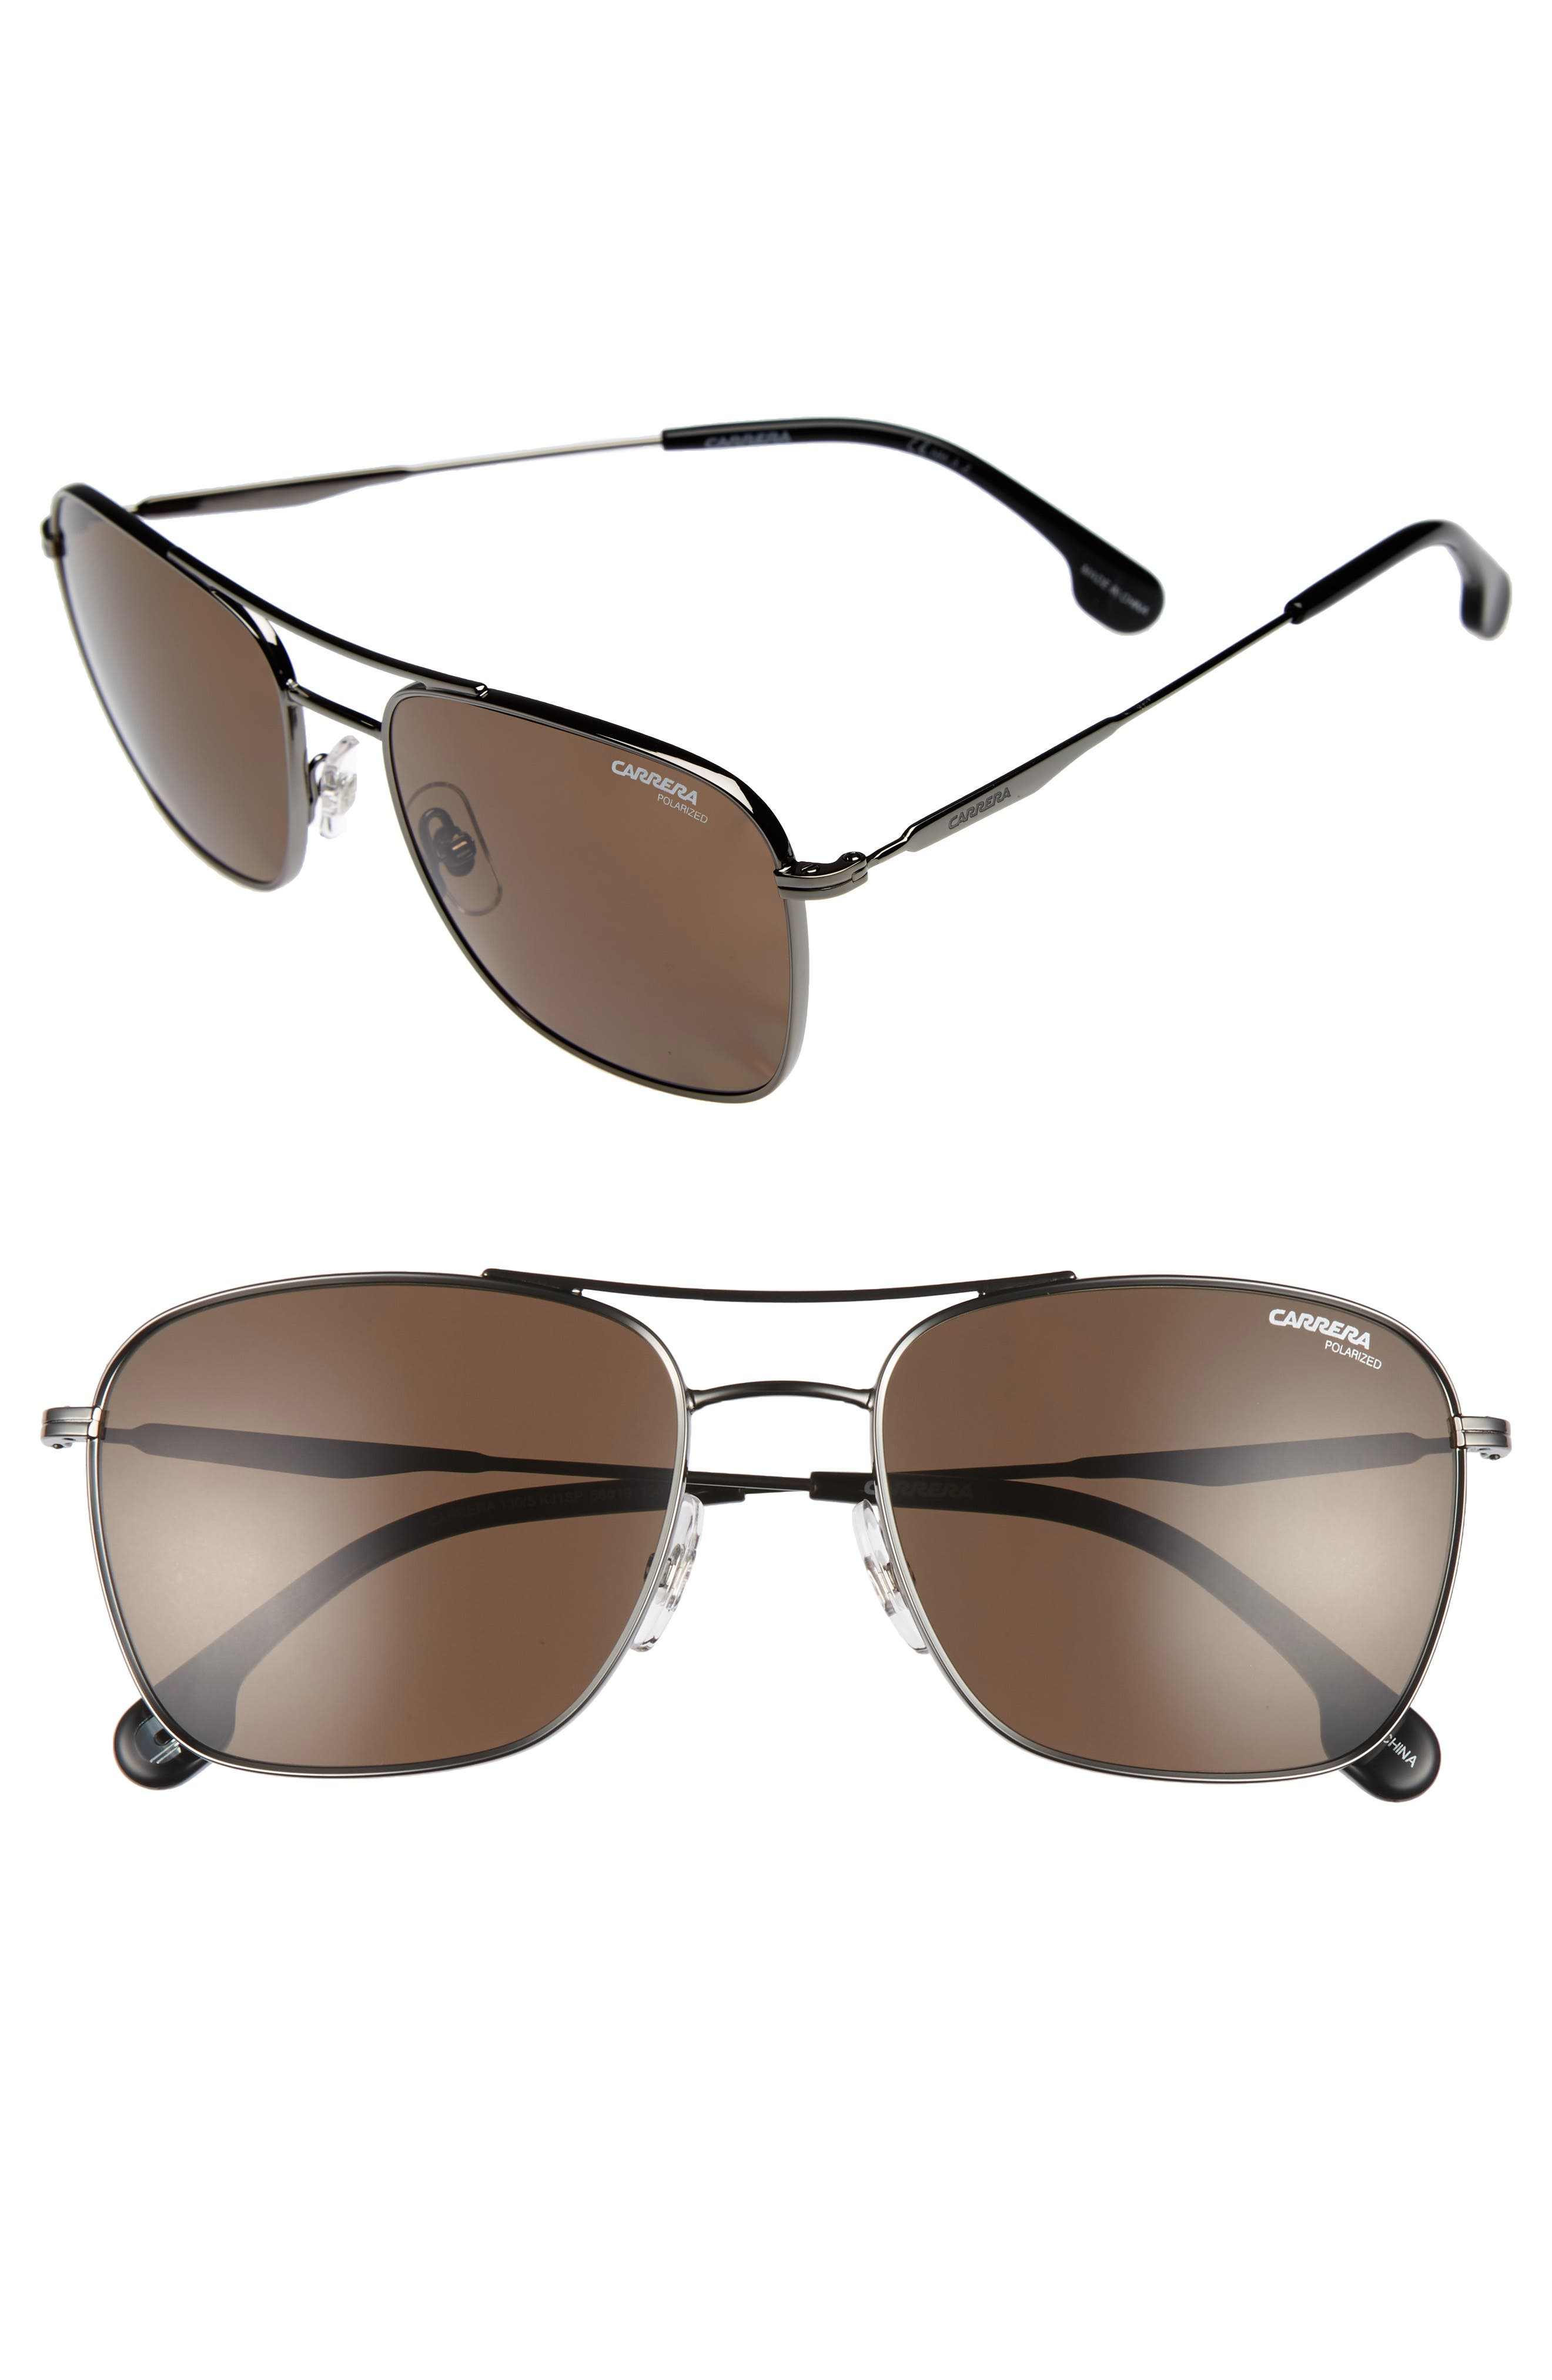 58m Polarized Sunglasses,                             Main thumbnail 1, color,                             DARK RUTHENIUM